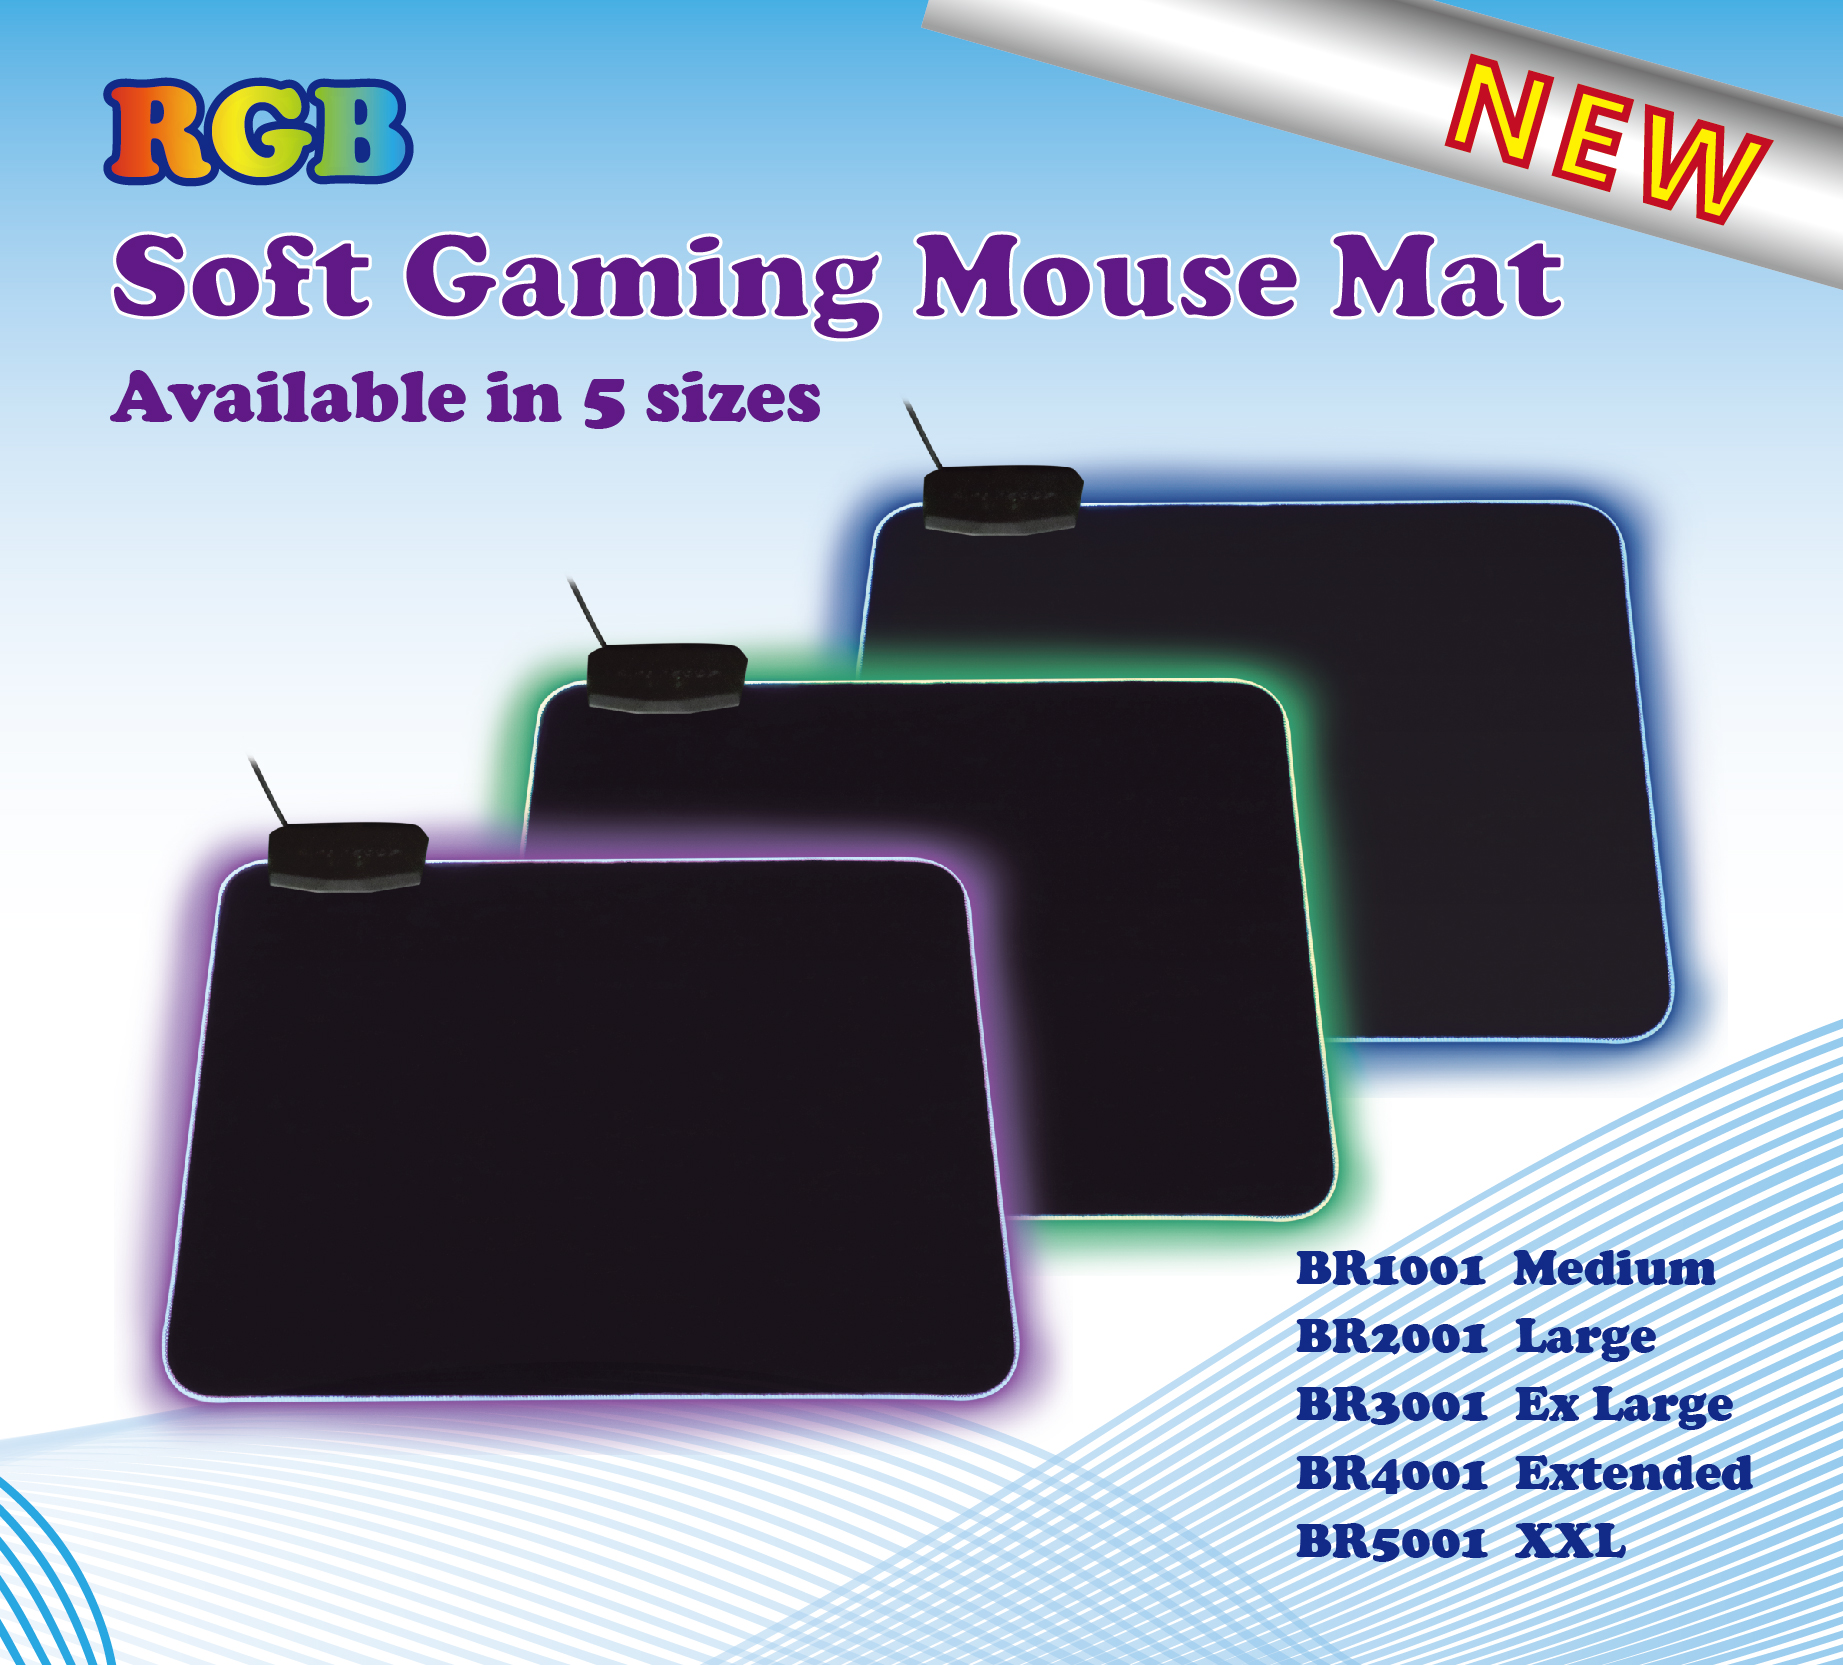 RGB Soft Gaming Mouse Mat